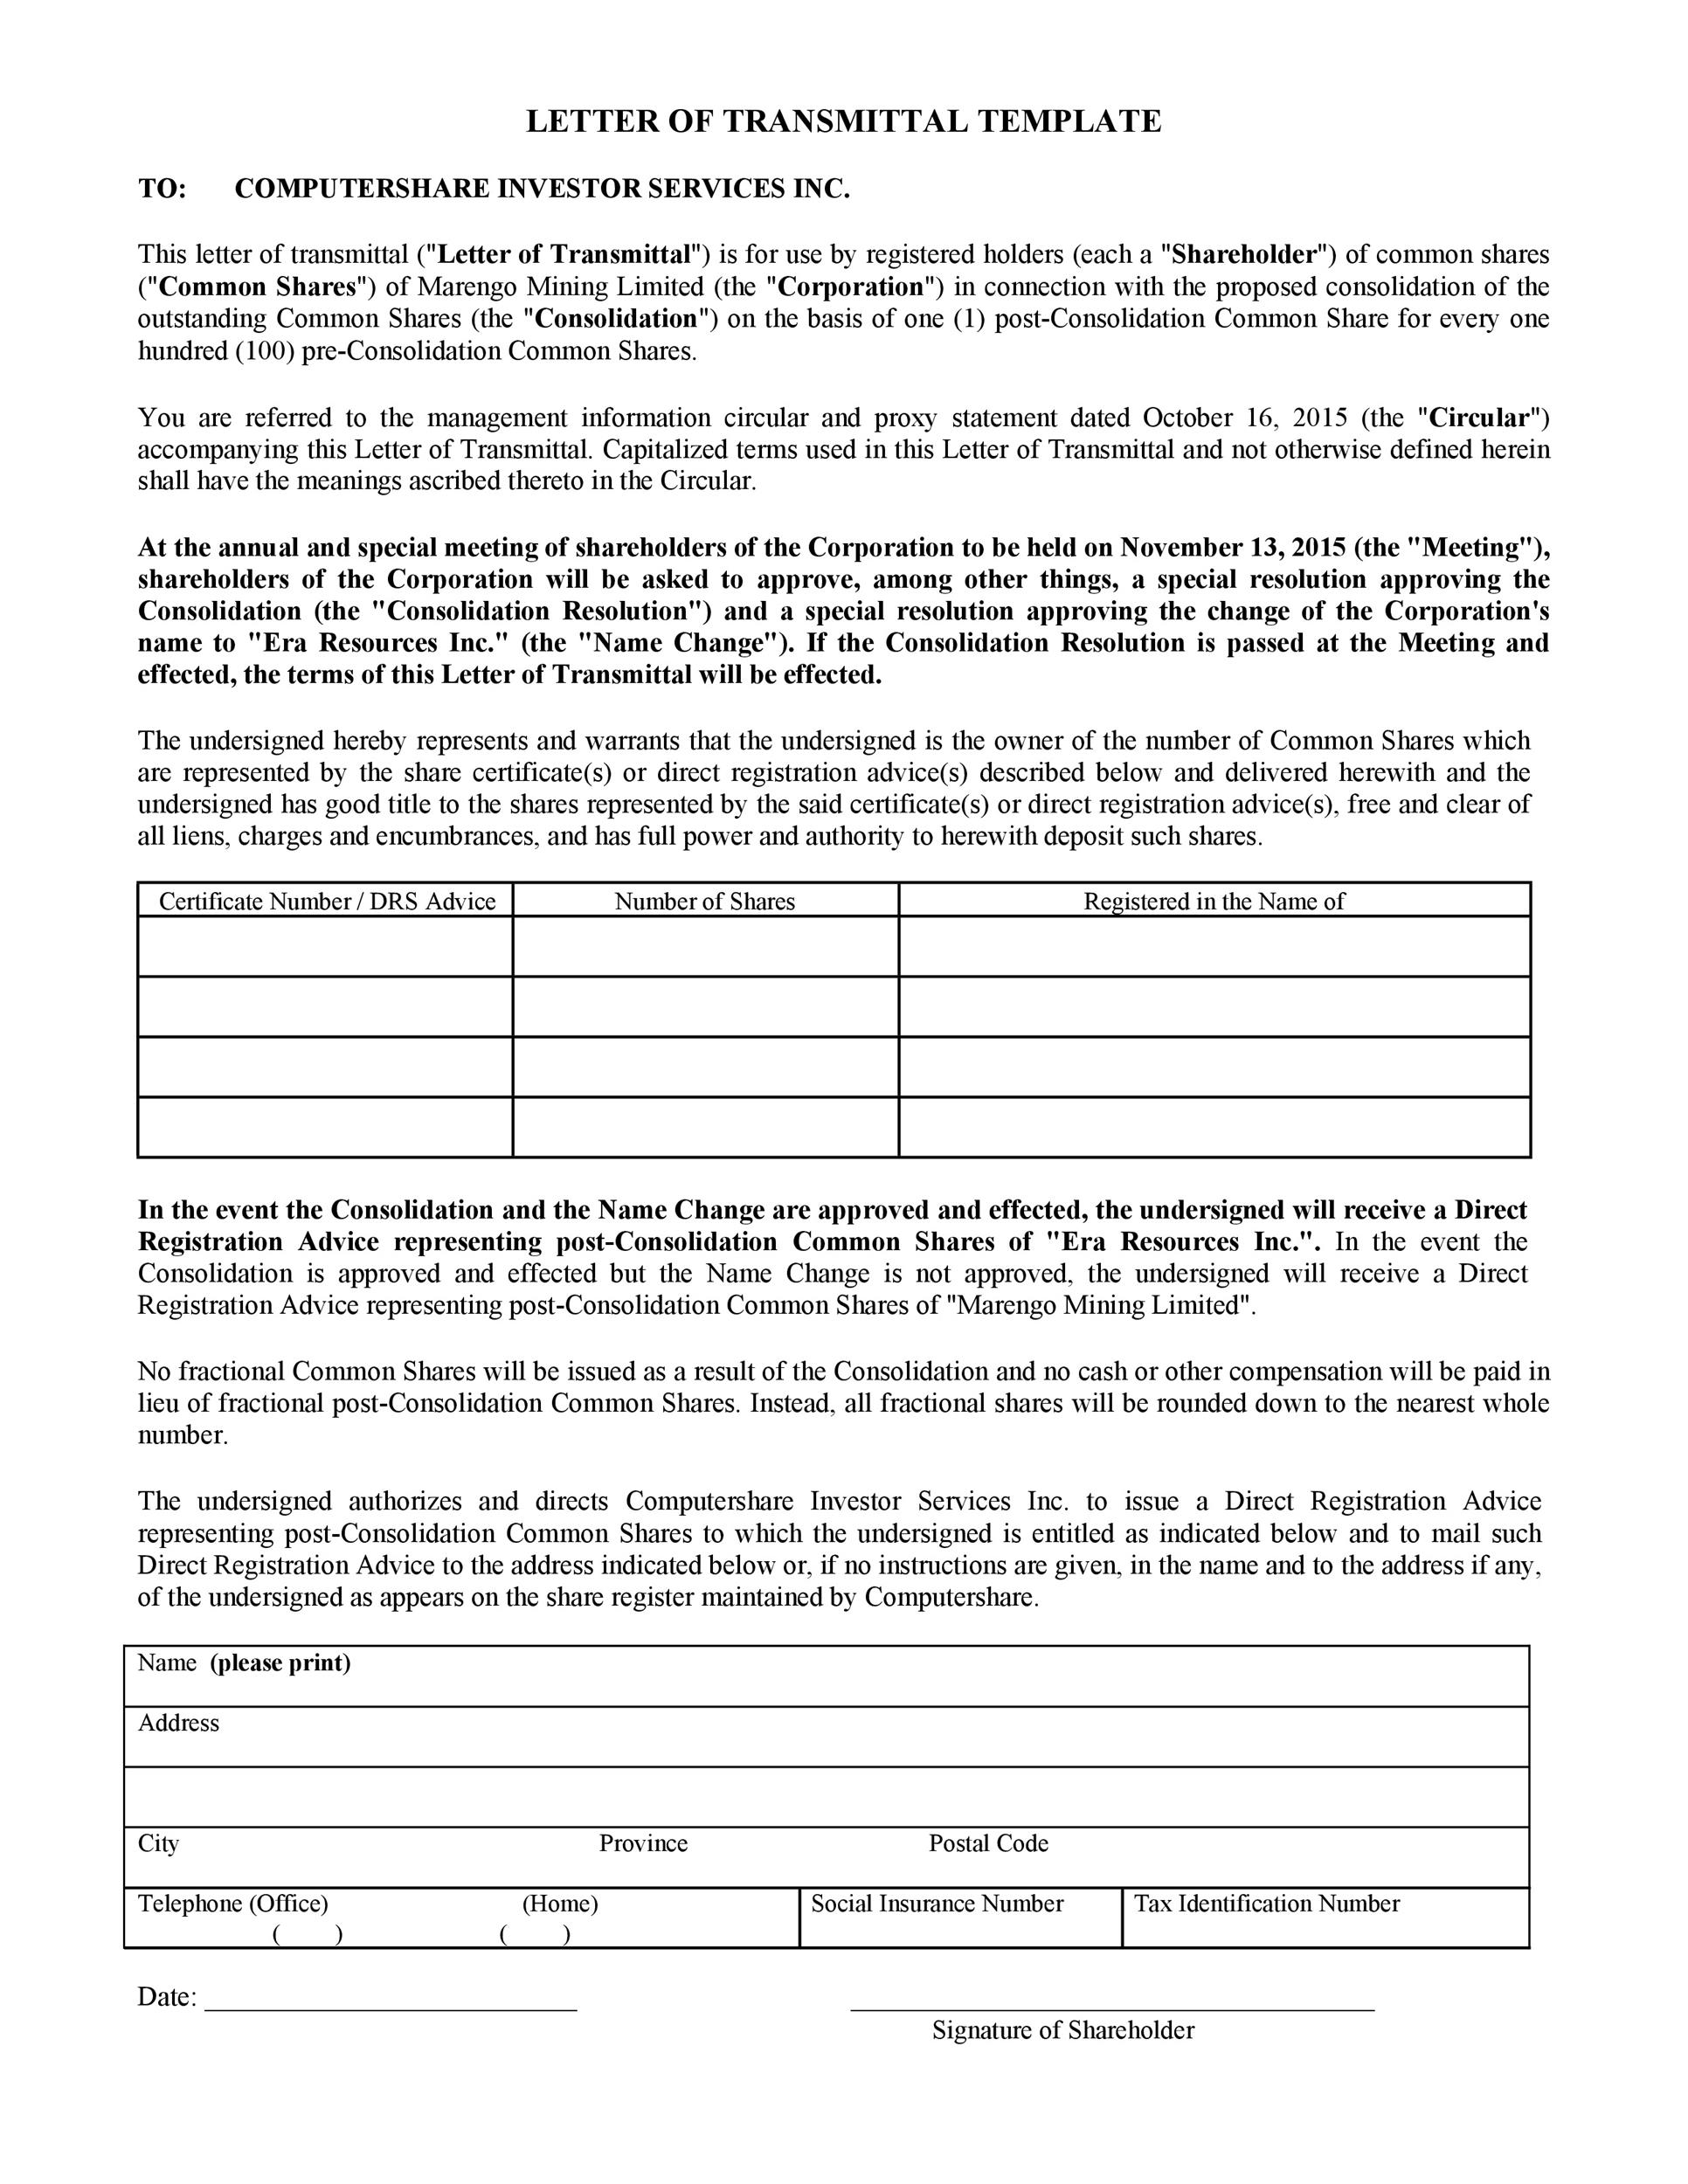 Free letter of transmittal template 23